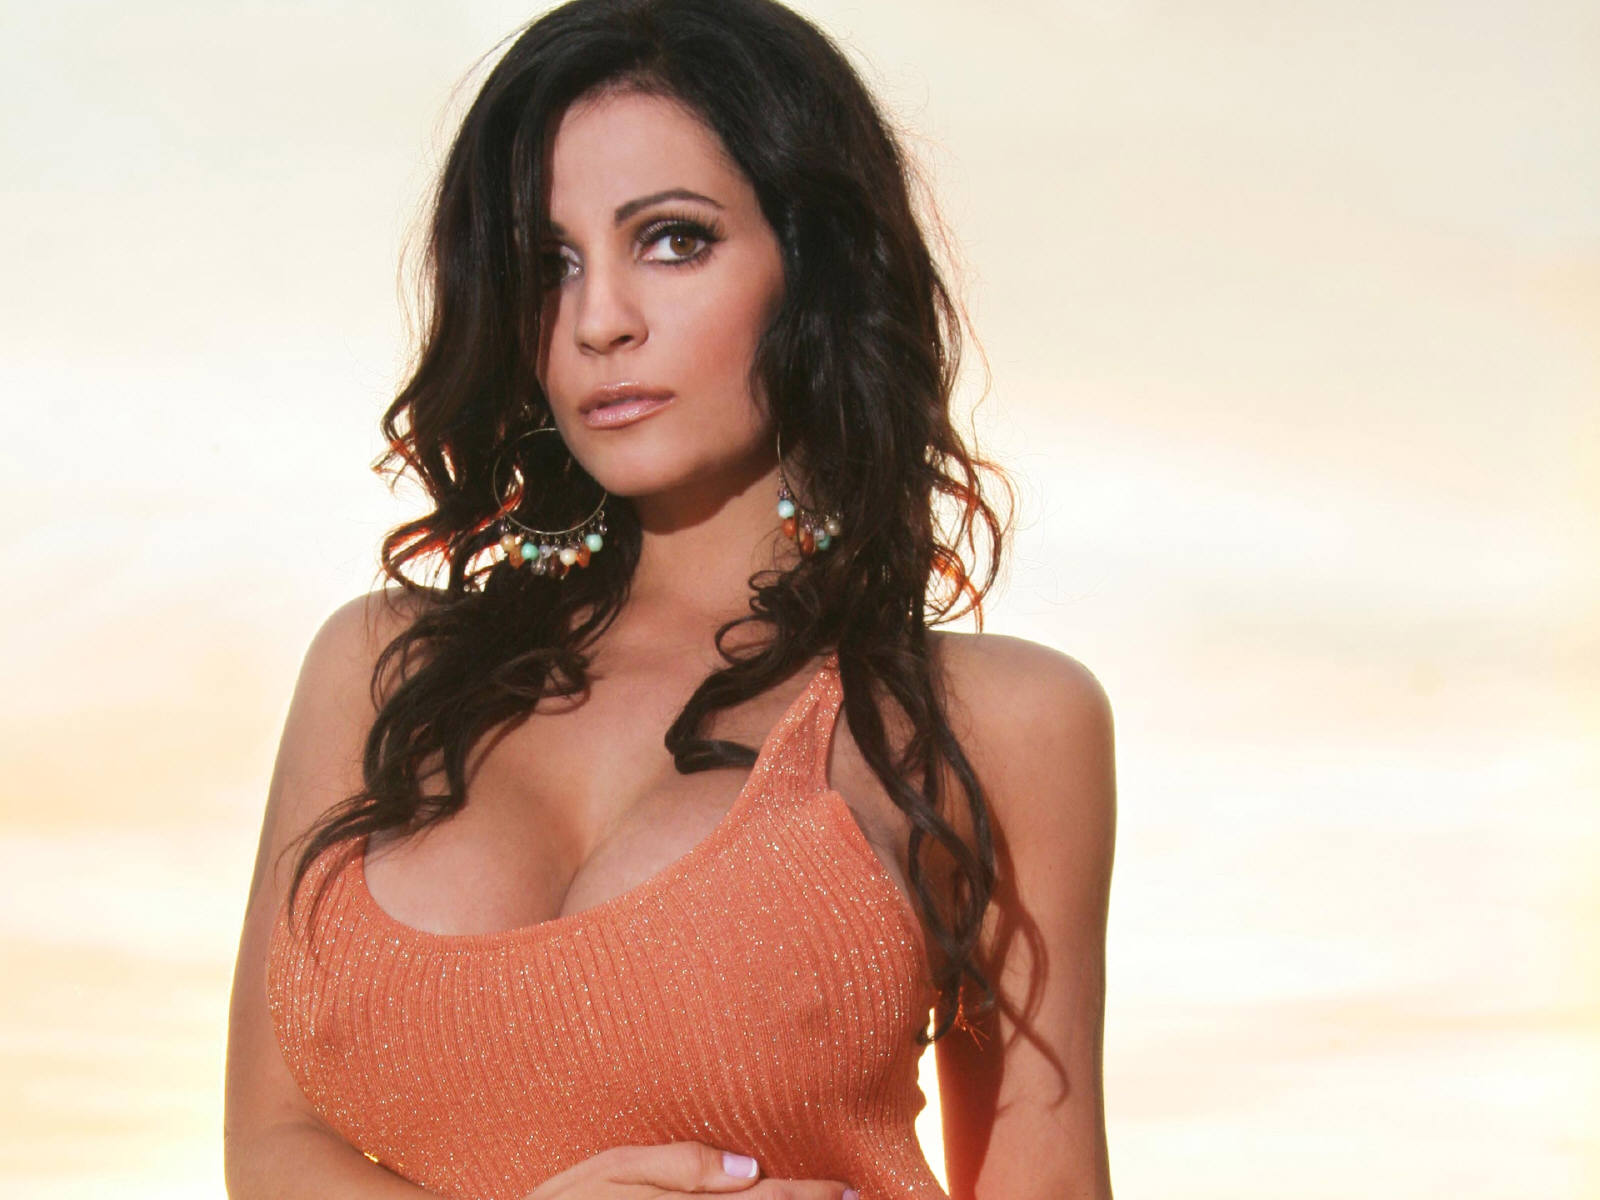 Girls In Lingerie Pc Wallpapeer Denise Milani Photo Gallery Hollywood Photo Galleries